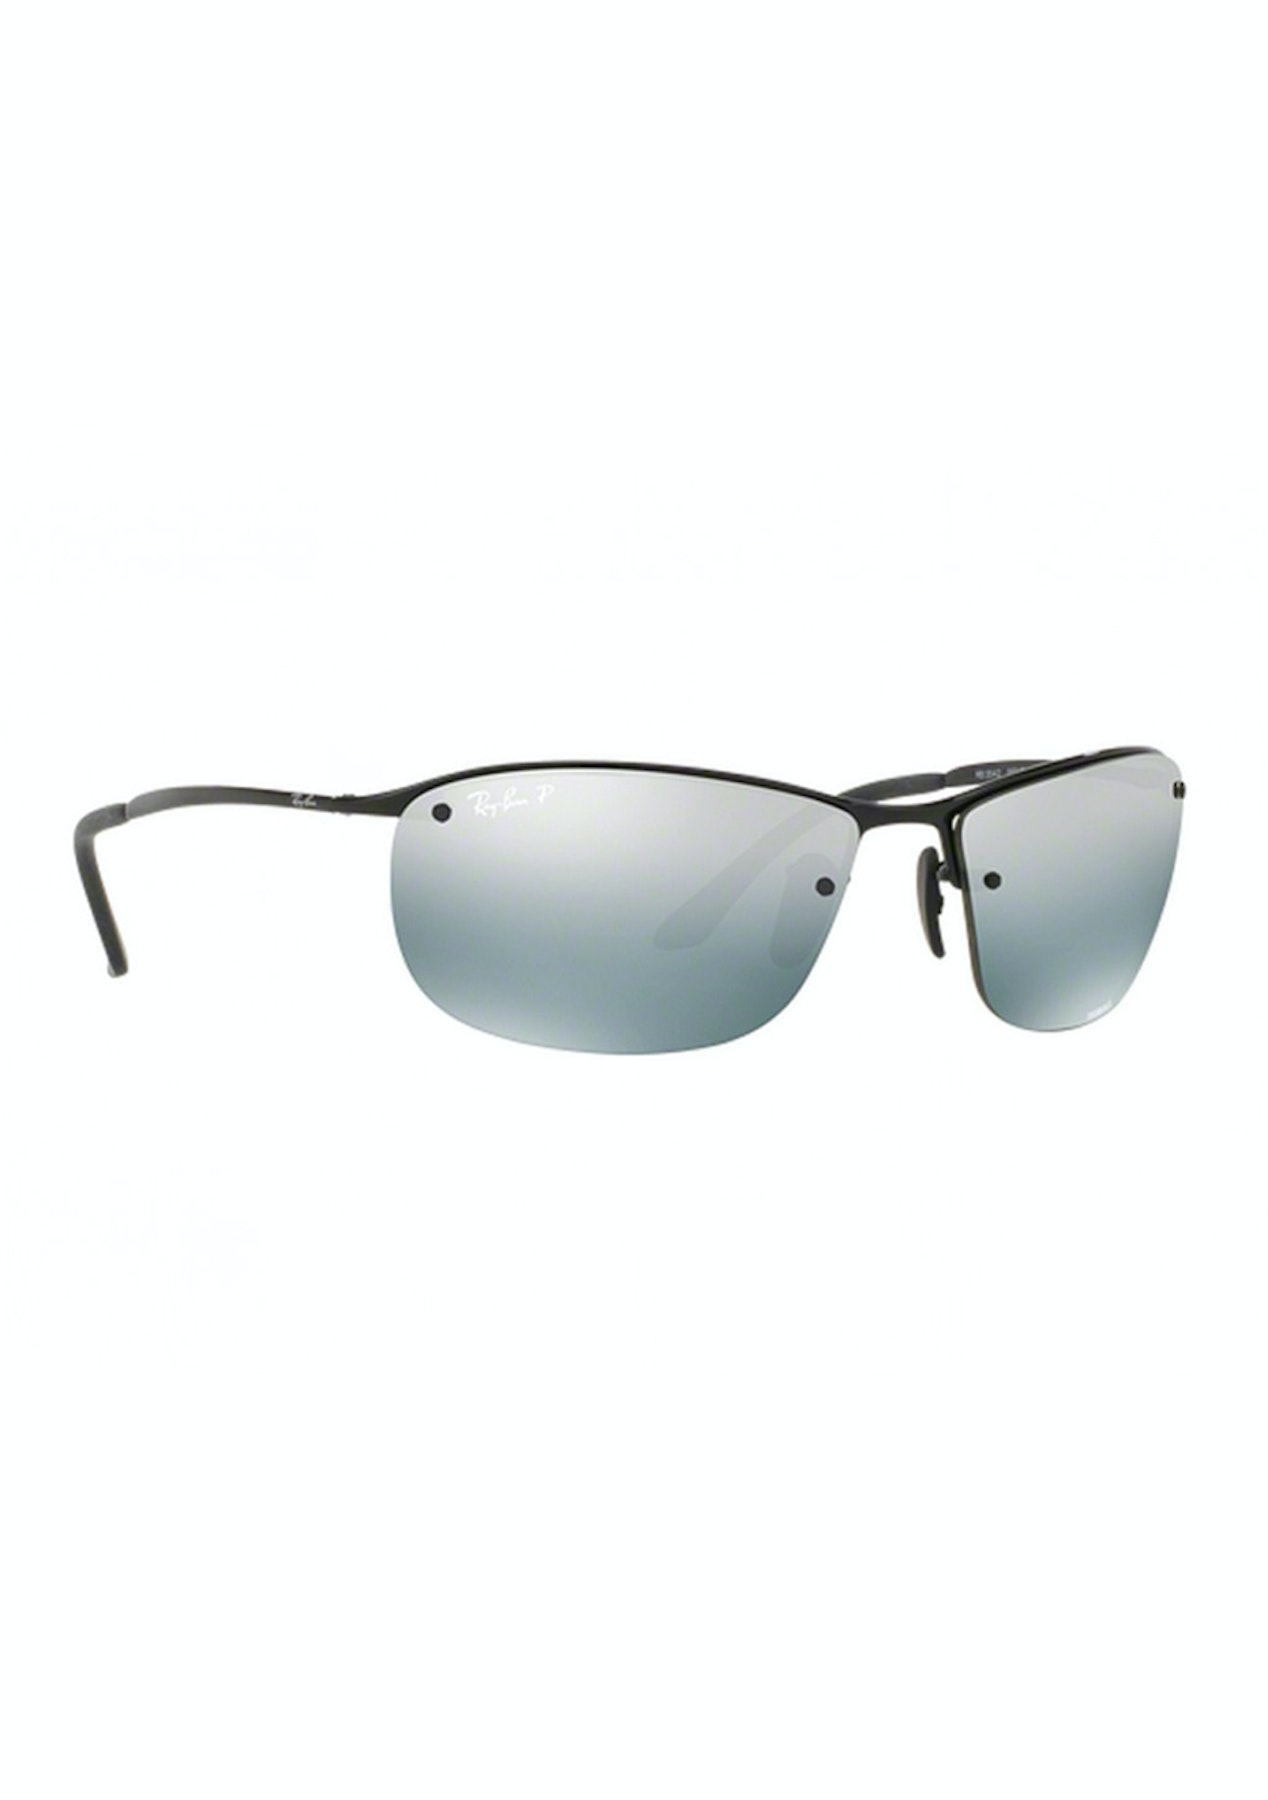 05f45f0a7ab Ray-Ban - Chromance Polarized Sunglasses - Black Grey Lens - Ray-Bans From   149.95 - Onceit